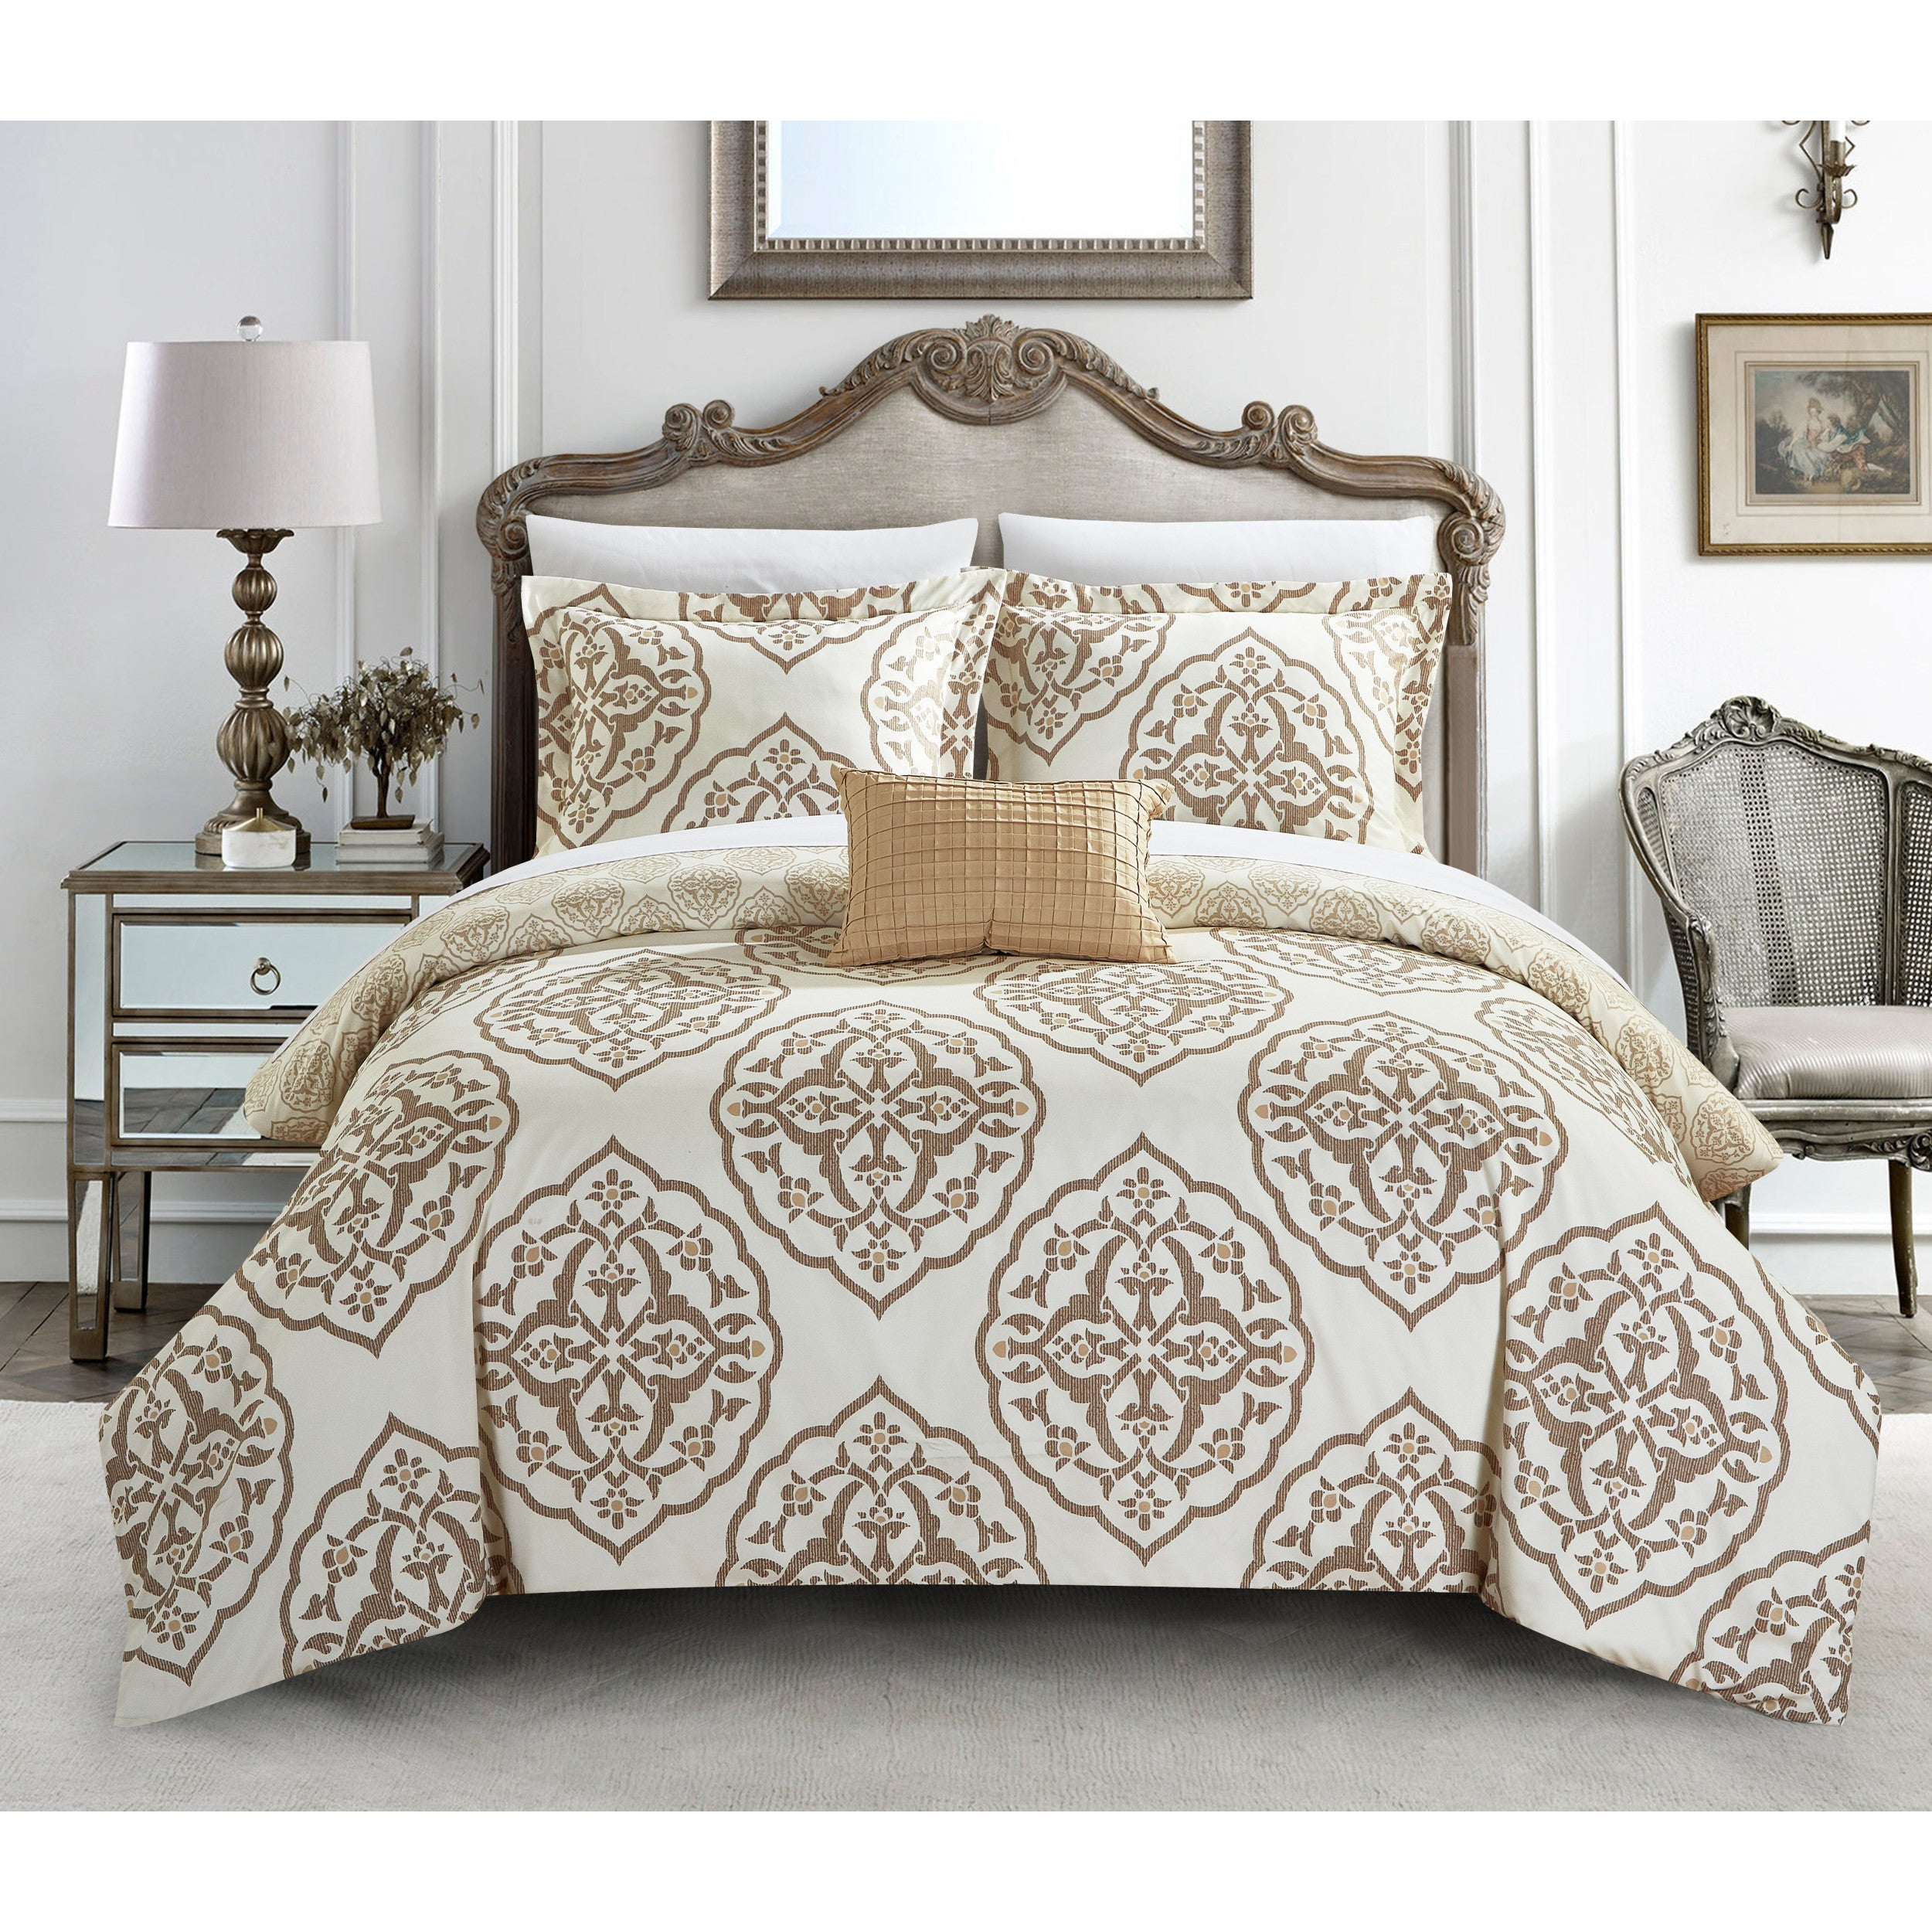 high beige cotton class solid luxurious cover queen duvet bedding turkish pattern pin strip stylish set